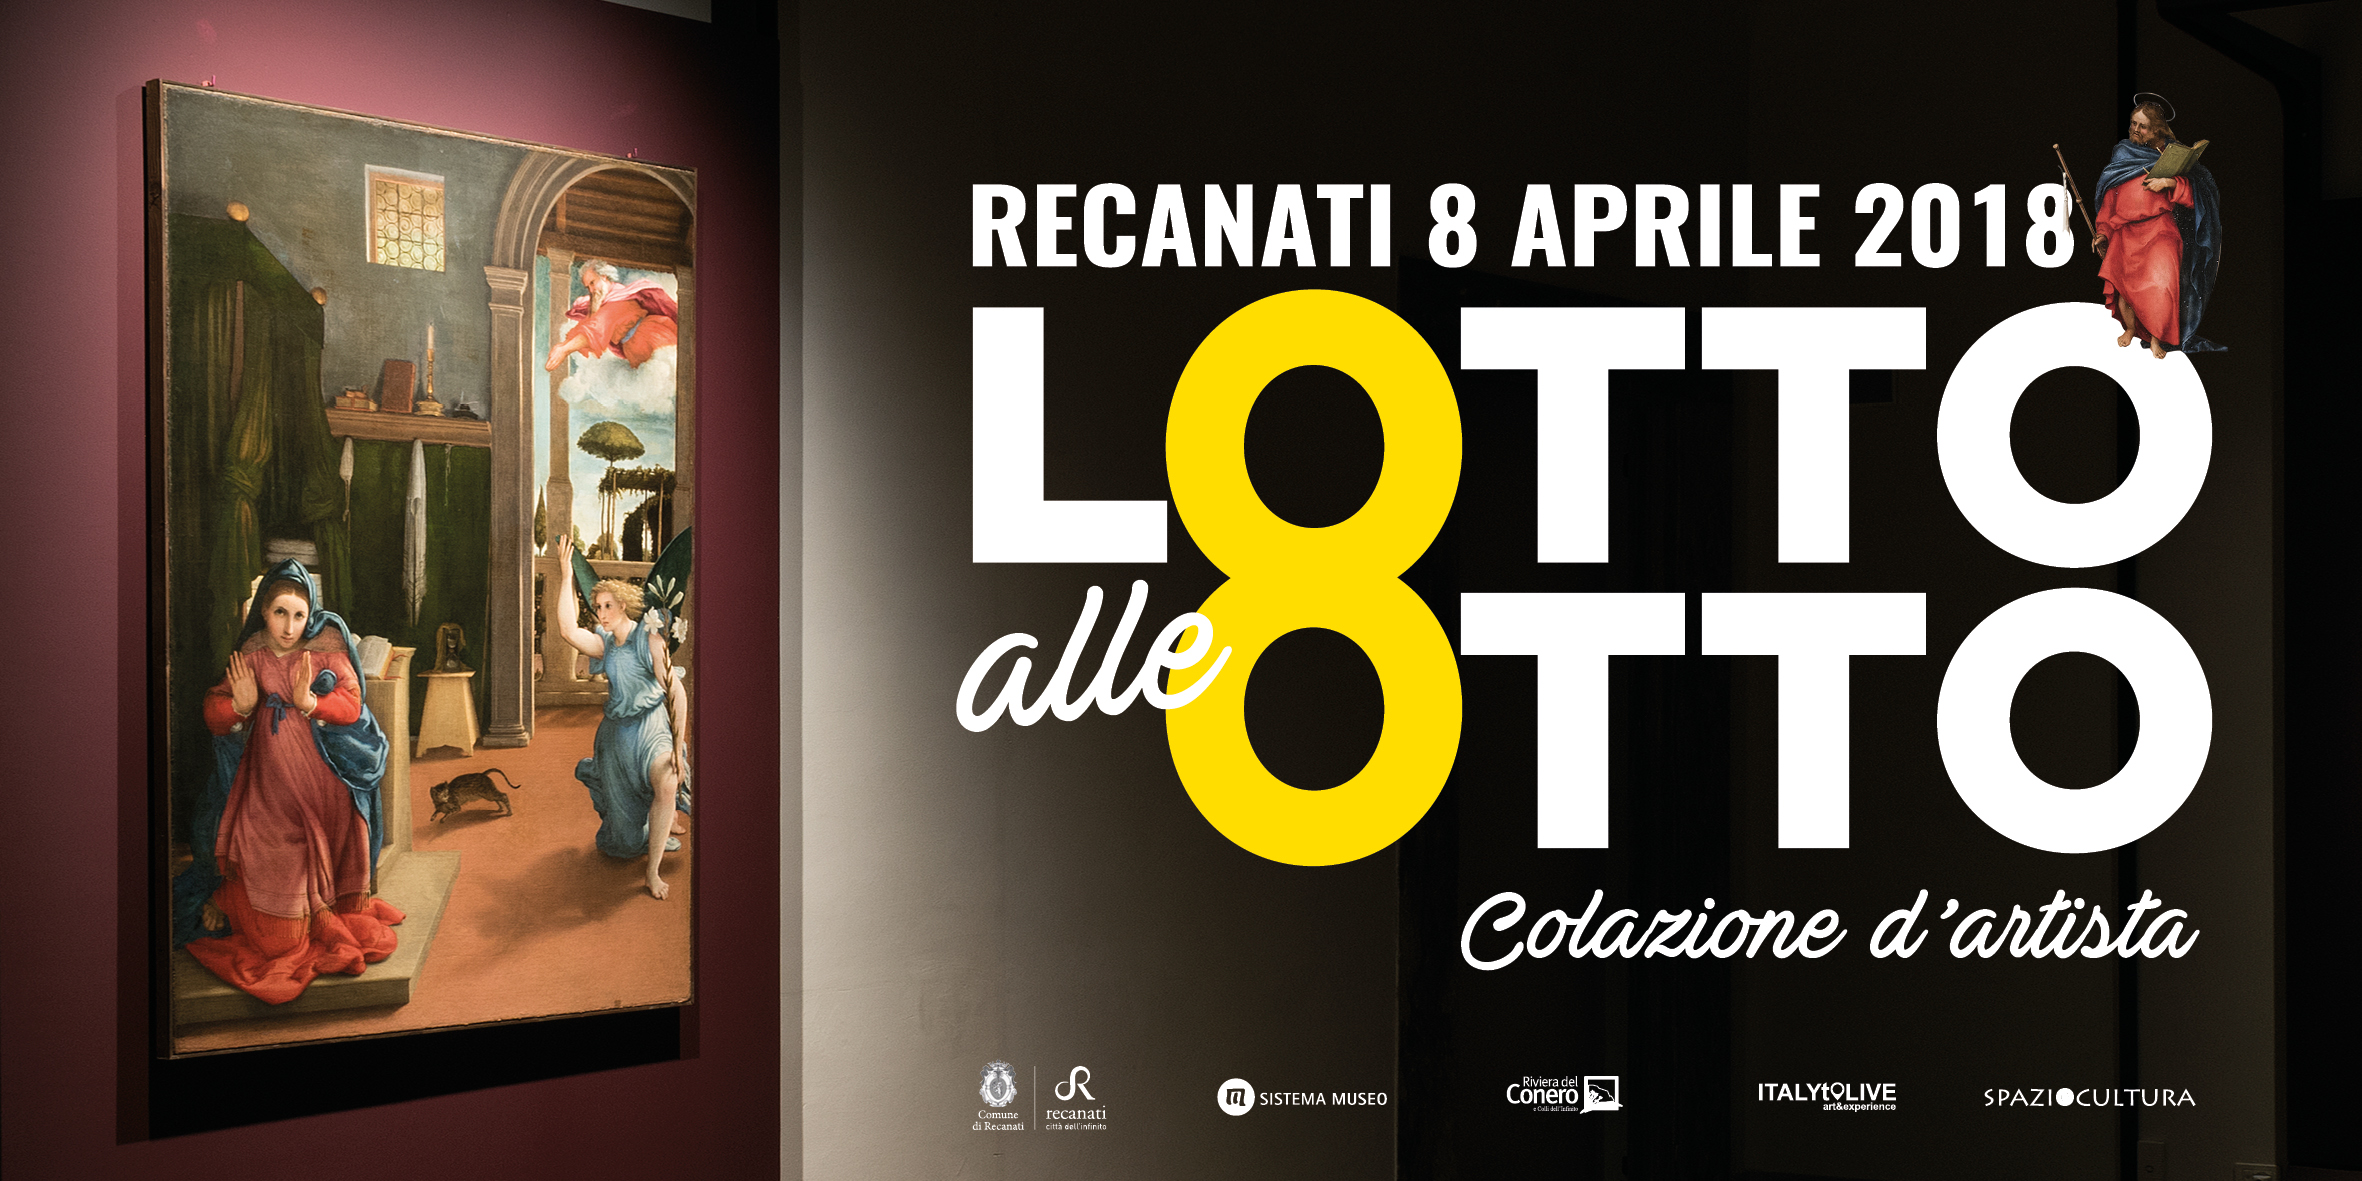 &quote;Lotto alle 8&quote;, colazione d'artista al museo